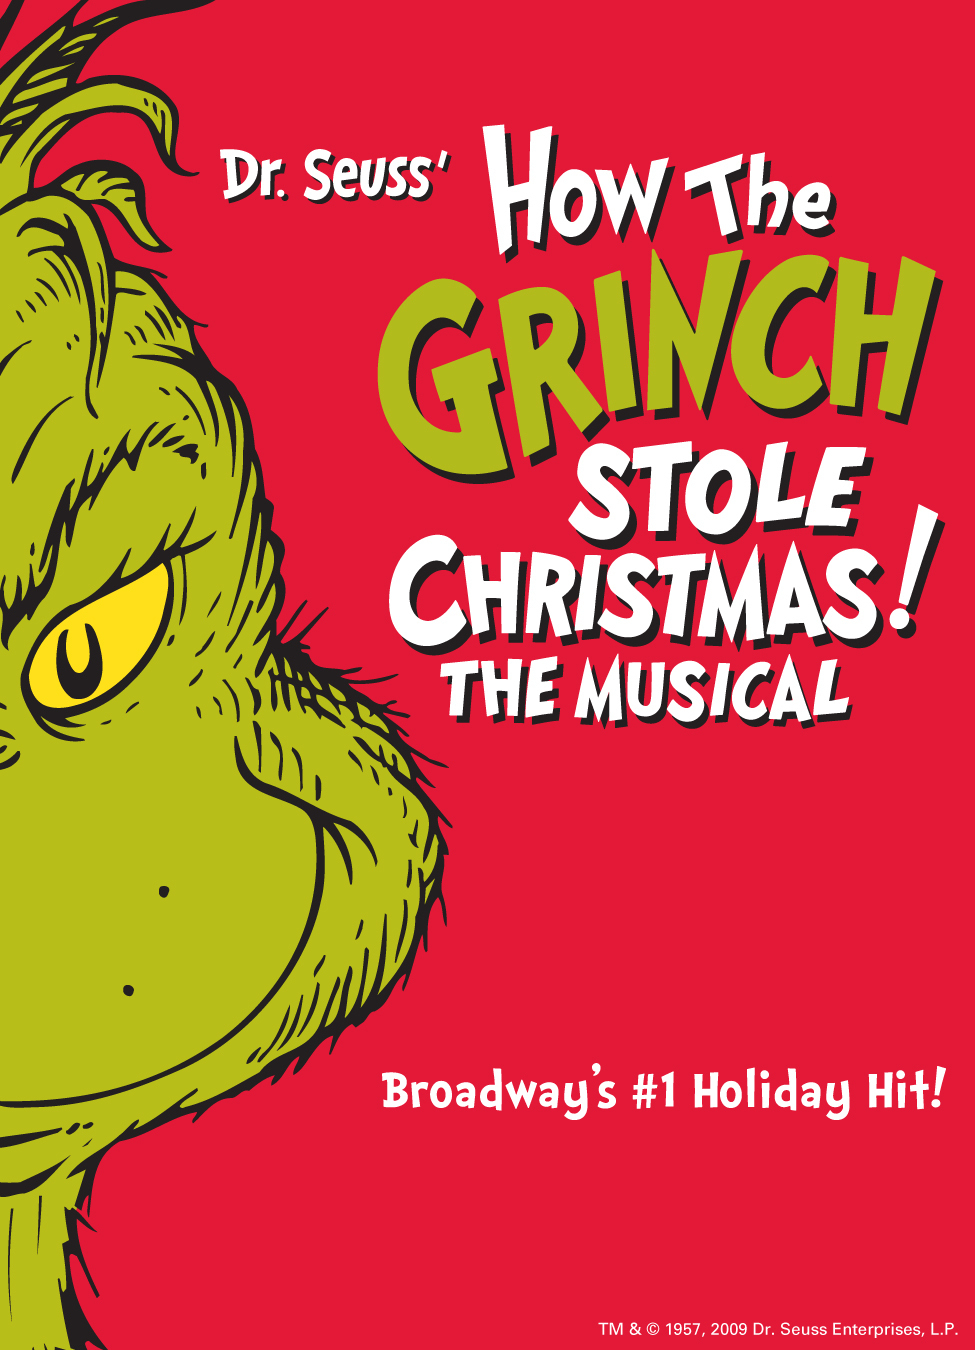 How The Grinch Stole Christmas Book Quotes Quotesgram. Life Quotes To Live By. Birthday Quotes Encouraging. Tumblr Quotes New. Cute Ziam Quotes. Inspirational Quotes Long. Alice In Wonderland Quotes Shrinking. Good Quotes Doctors. Disney Quotes Dan Artinya